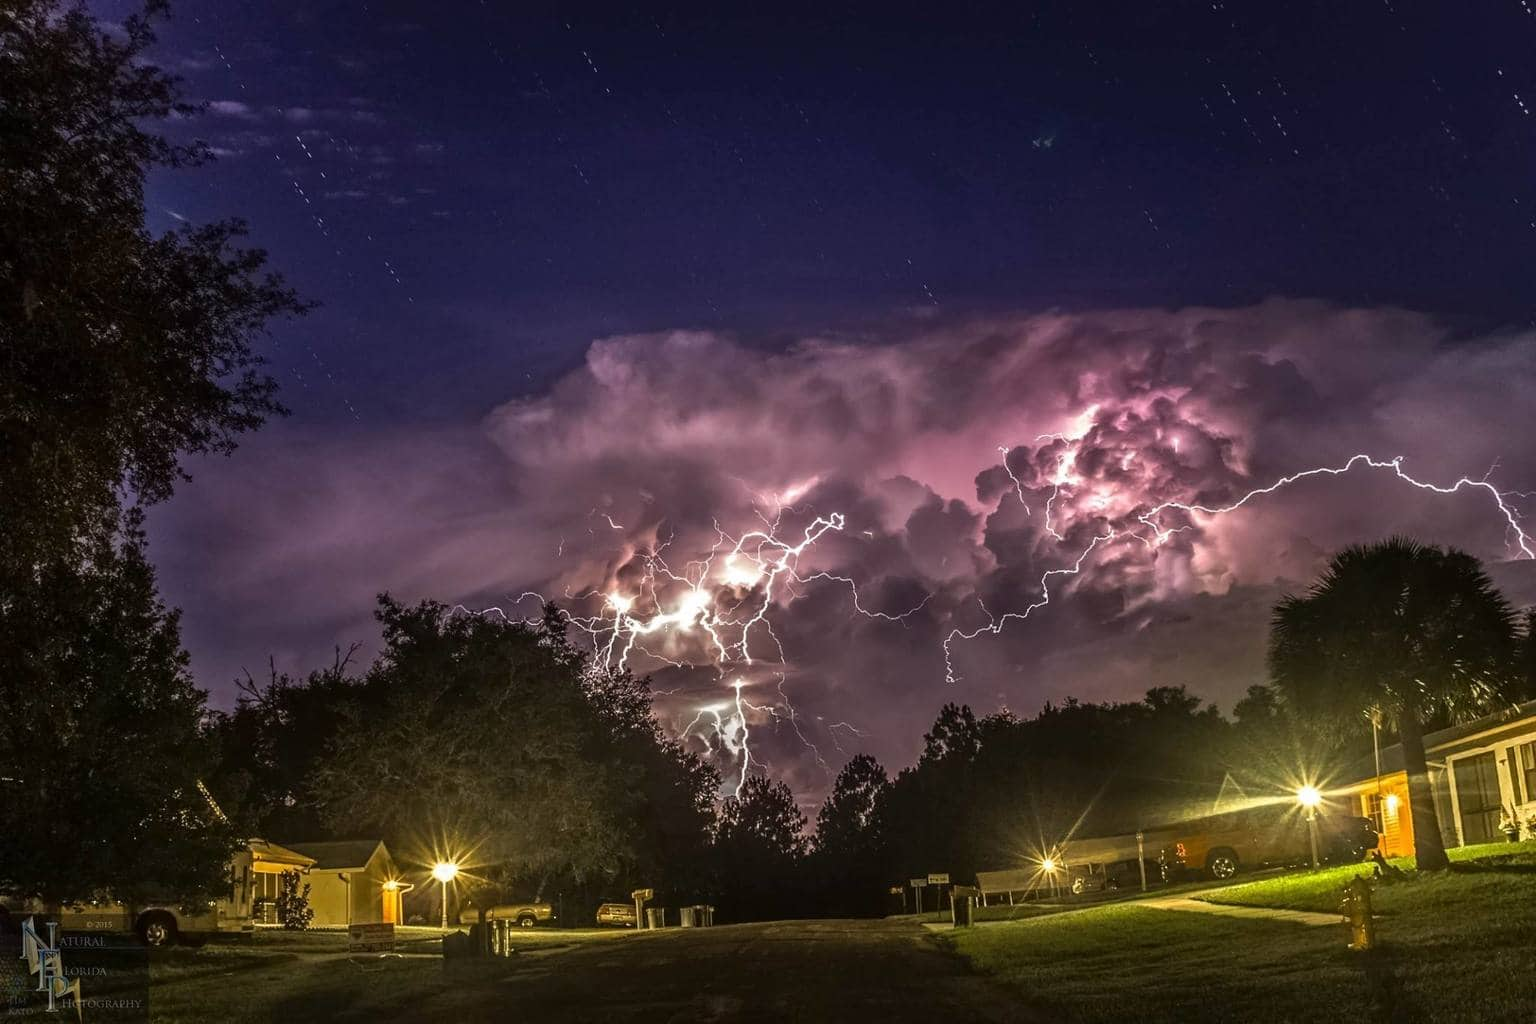 Lightning and star Trails. Citrus Springs, FL 7/7/15 5 image composite